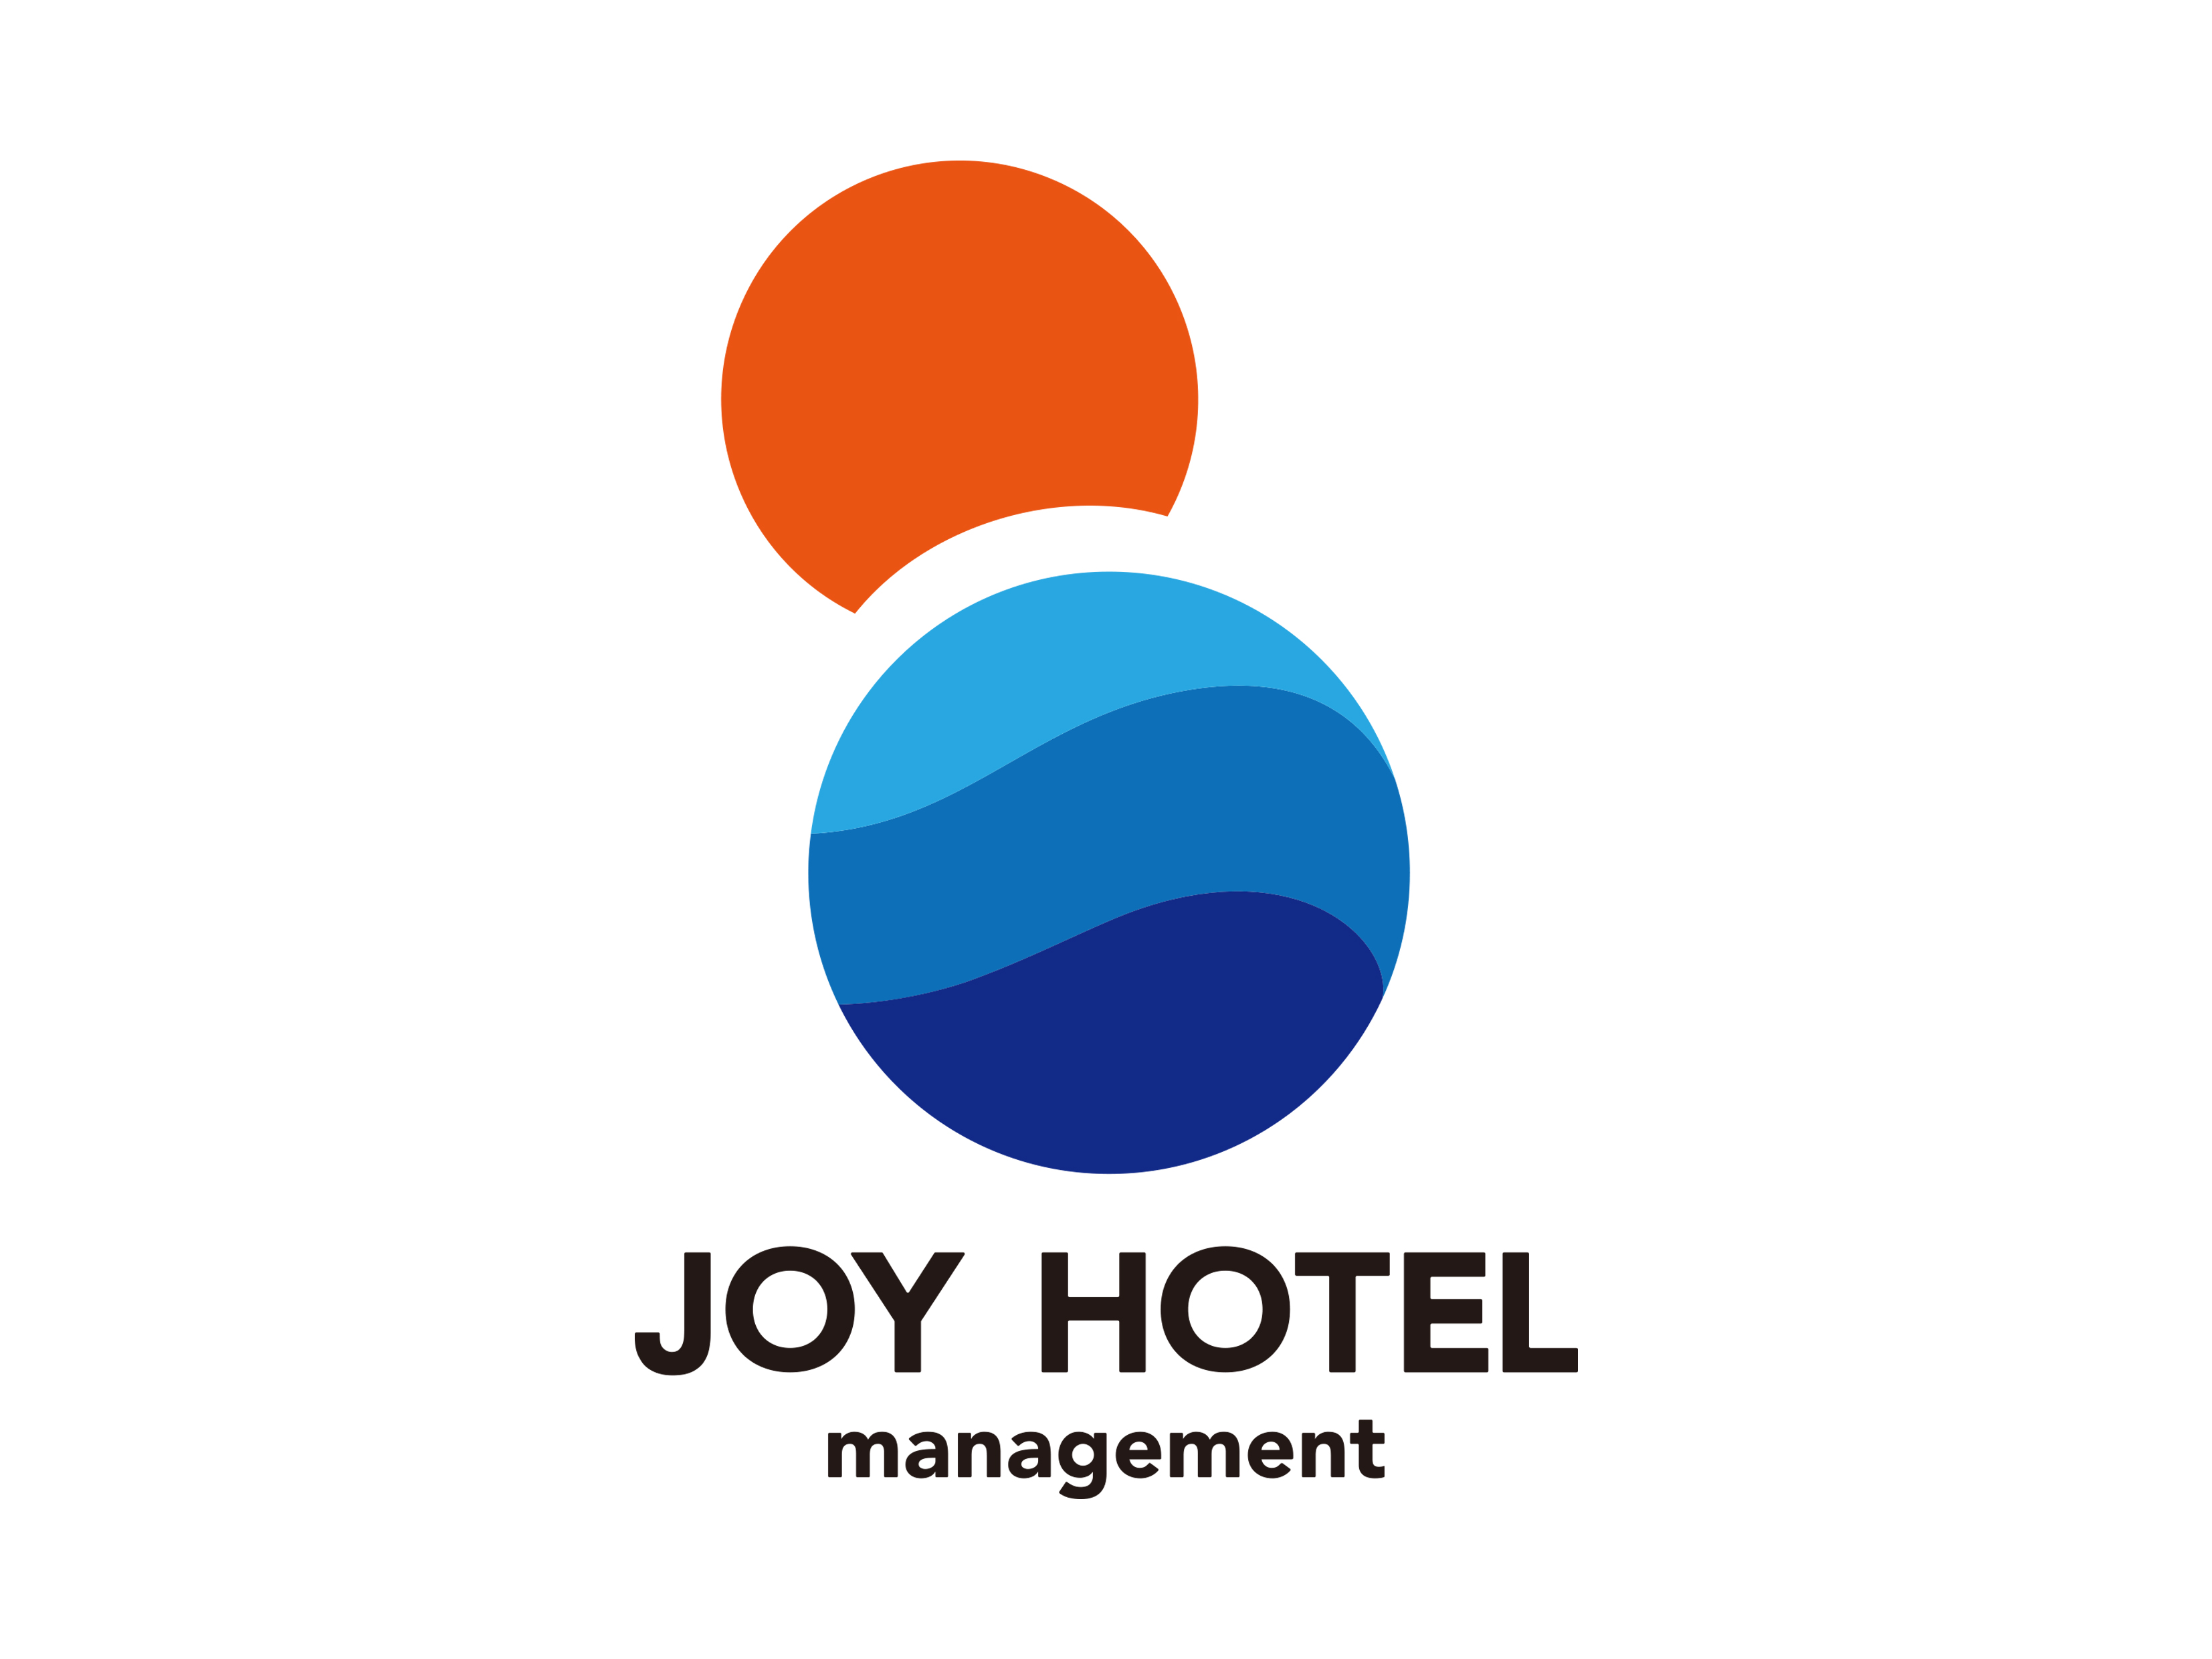 JOY HOTEL MANAGEMENT